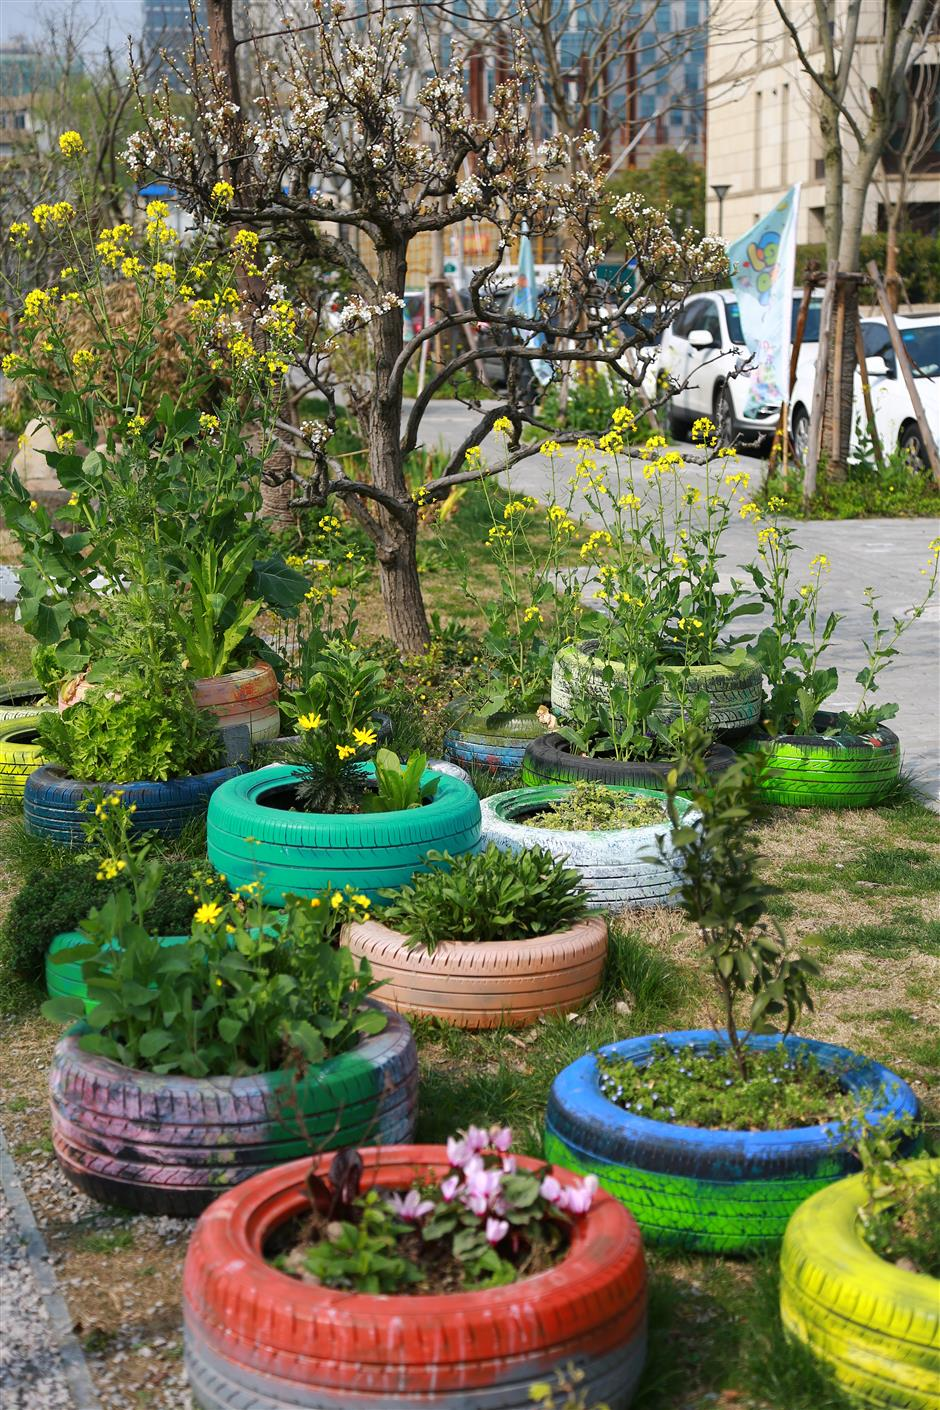 It's the nature of things: Community gardens relieve urban pressures